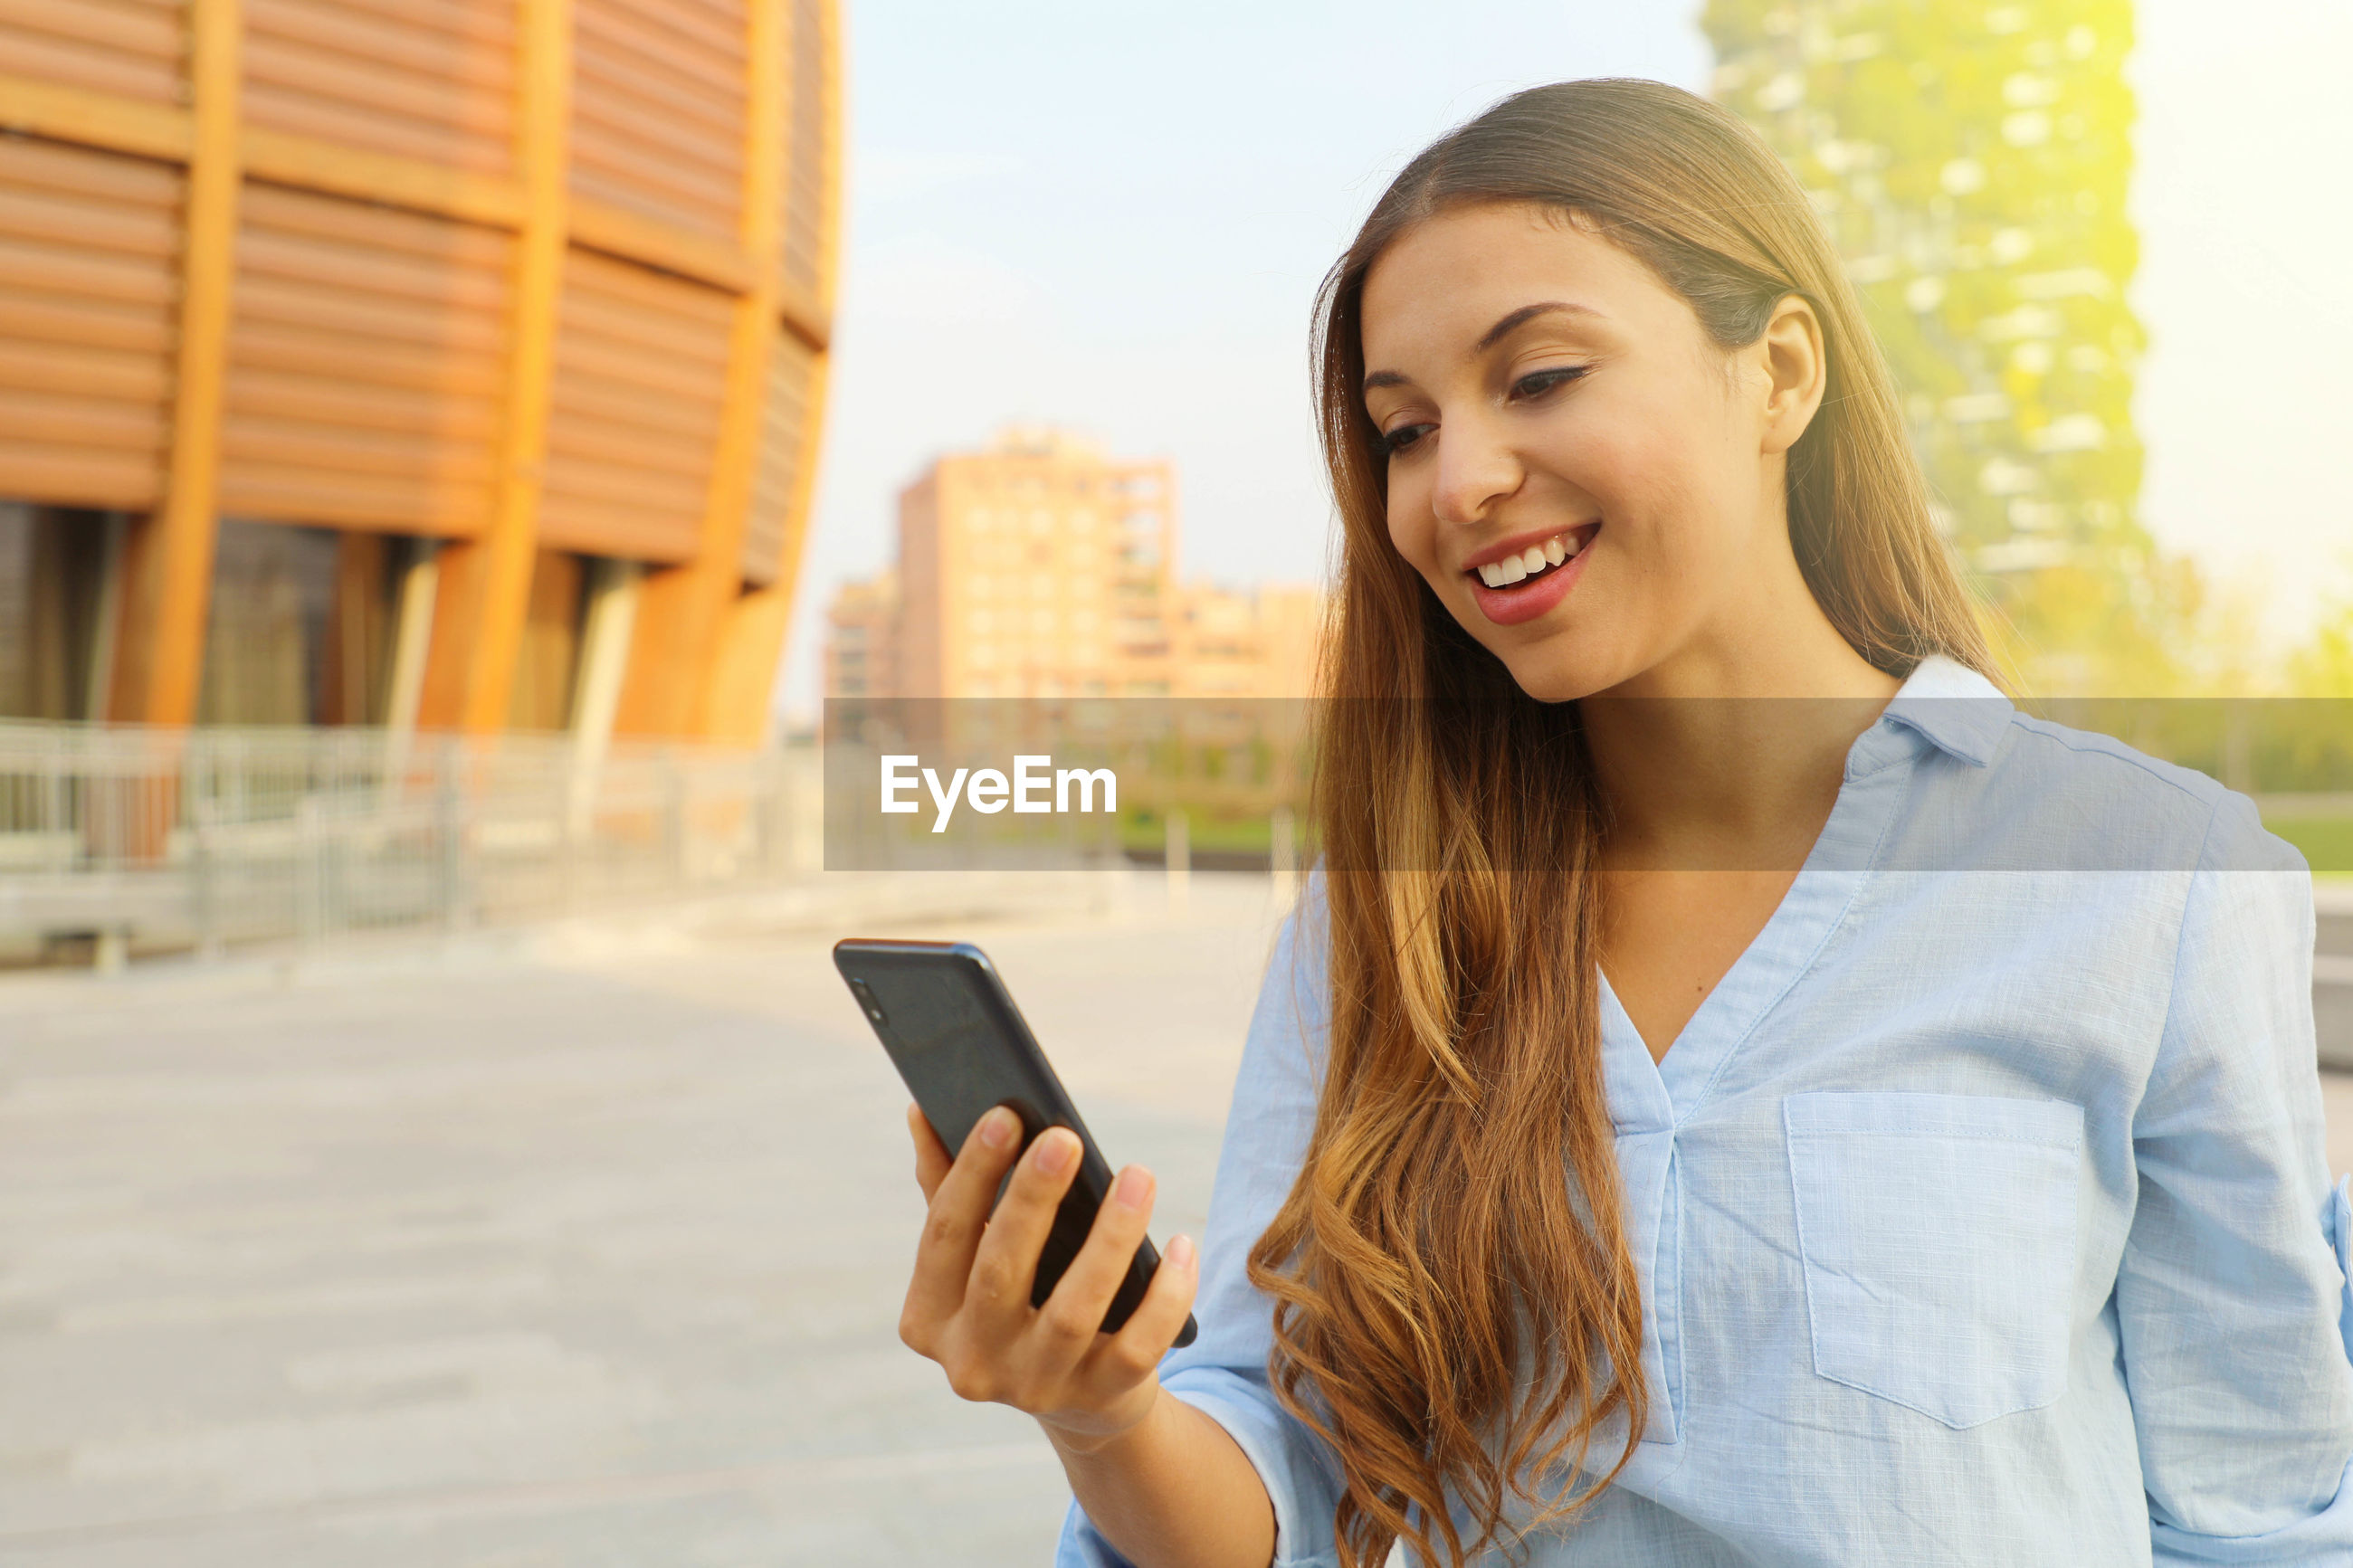 Smiling young woman using mobile phone while standing in city